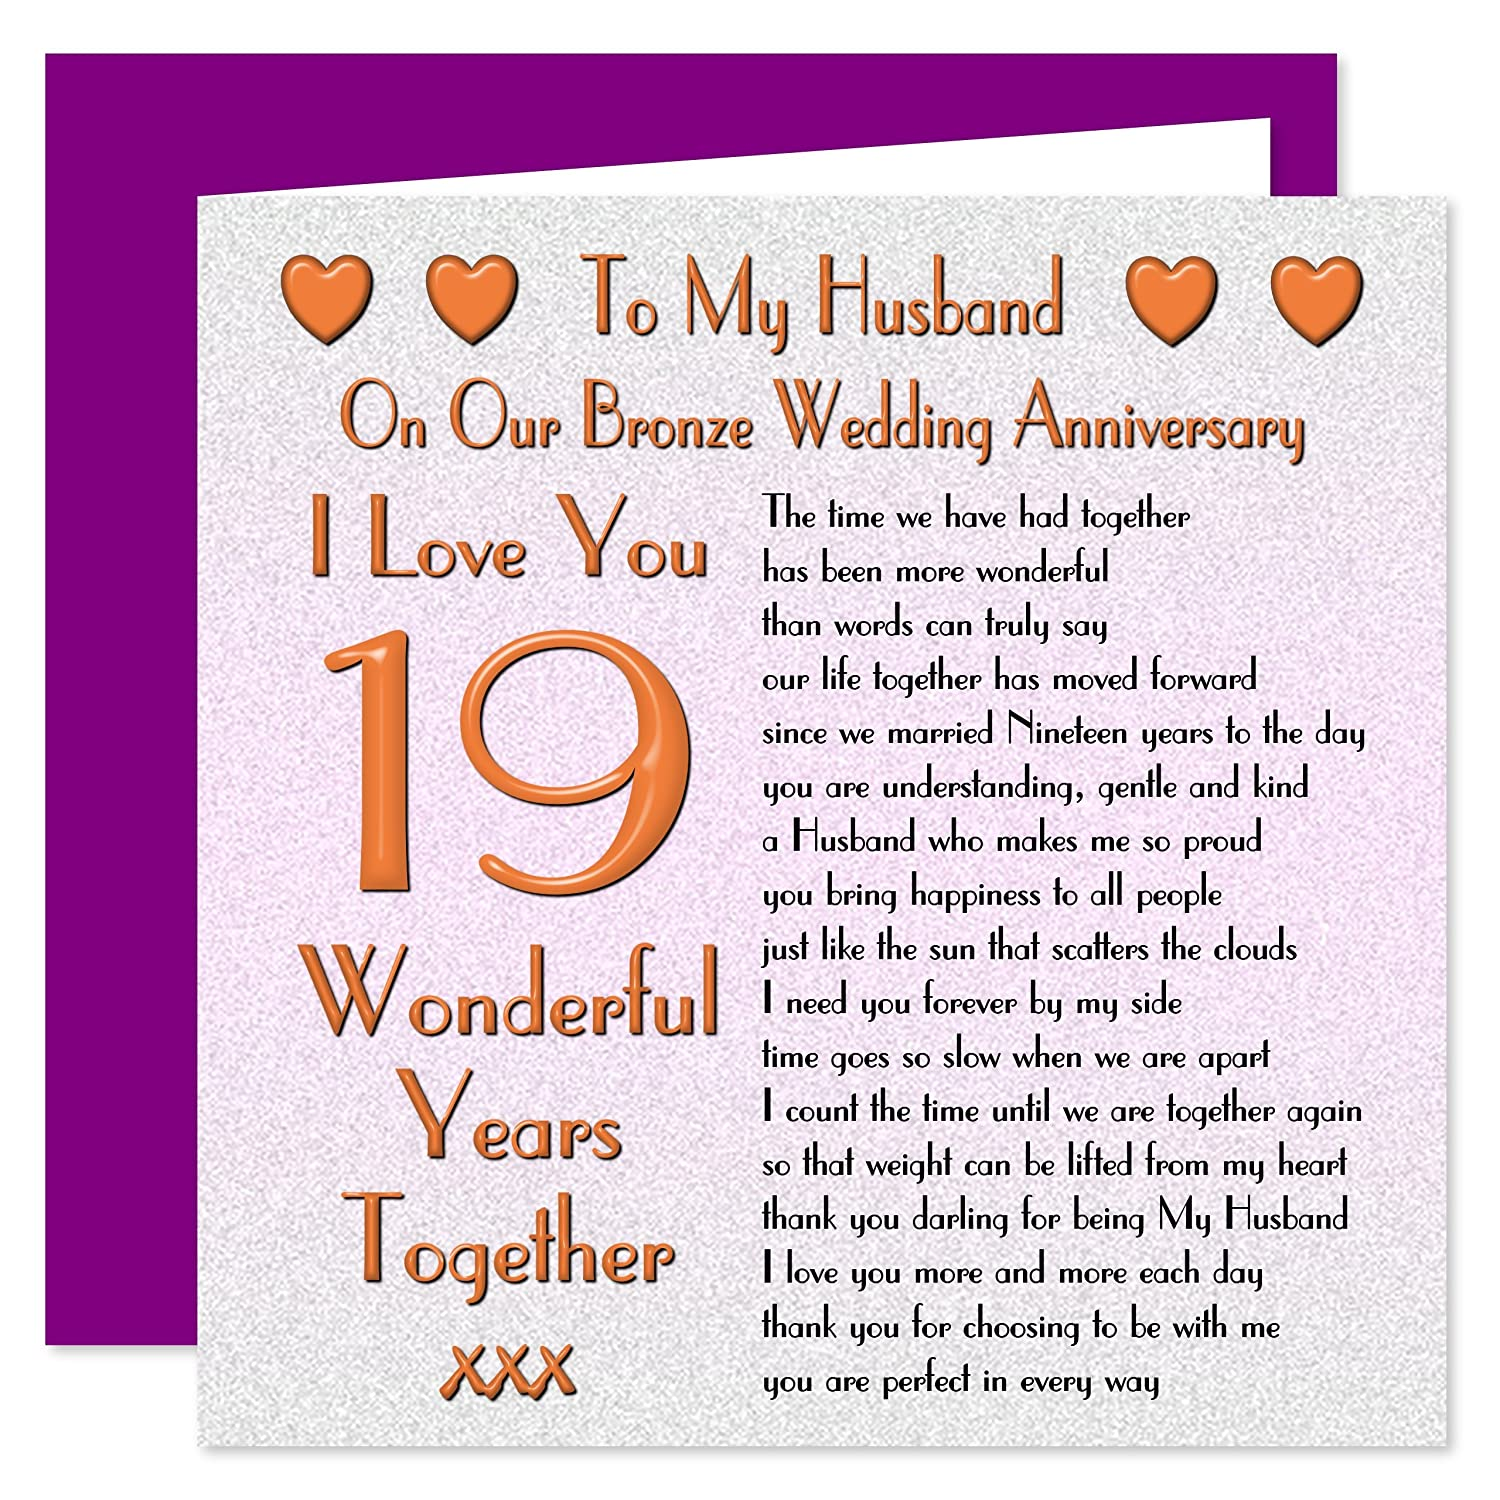 My Husband 19th Wedding Anniversary Card On Our Bronze Anniversary